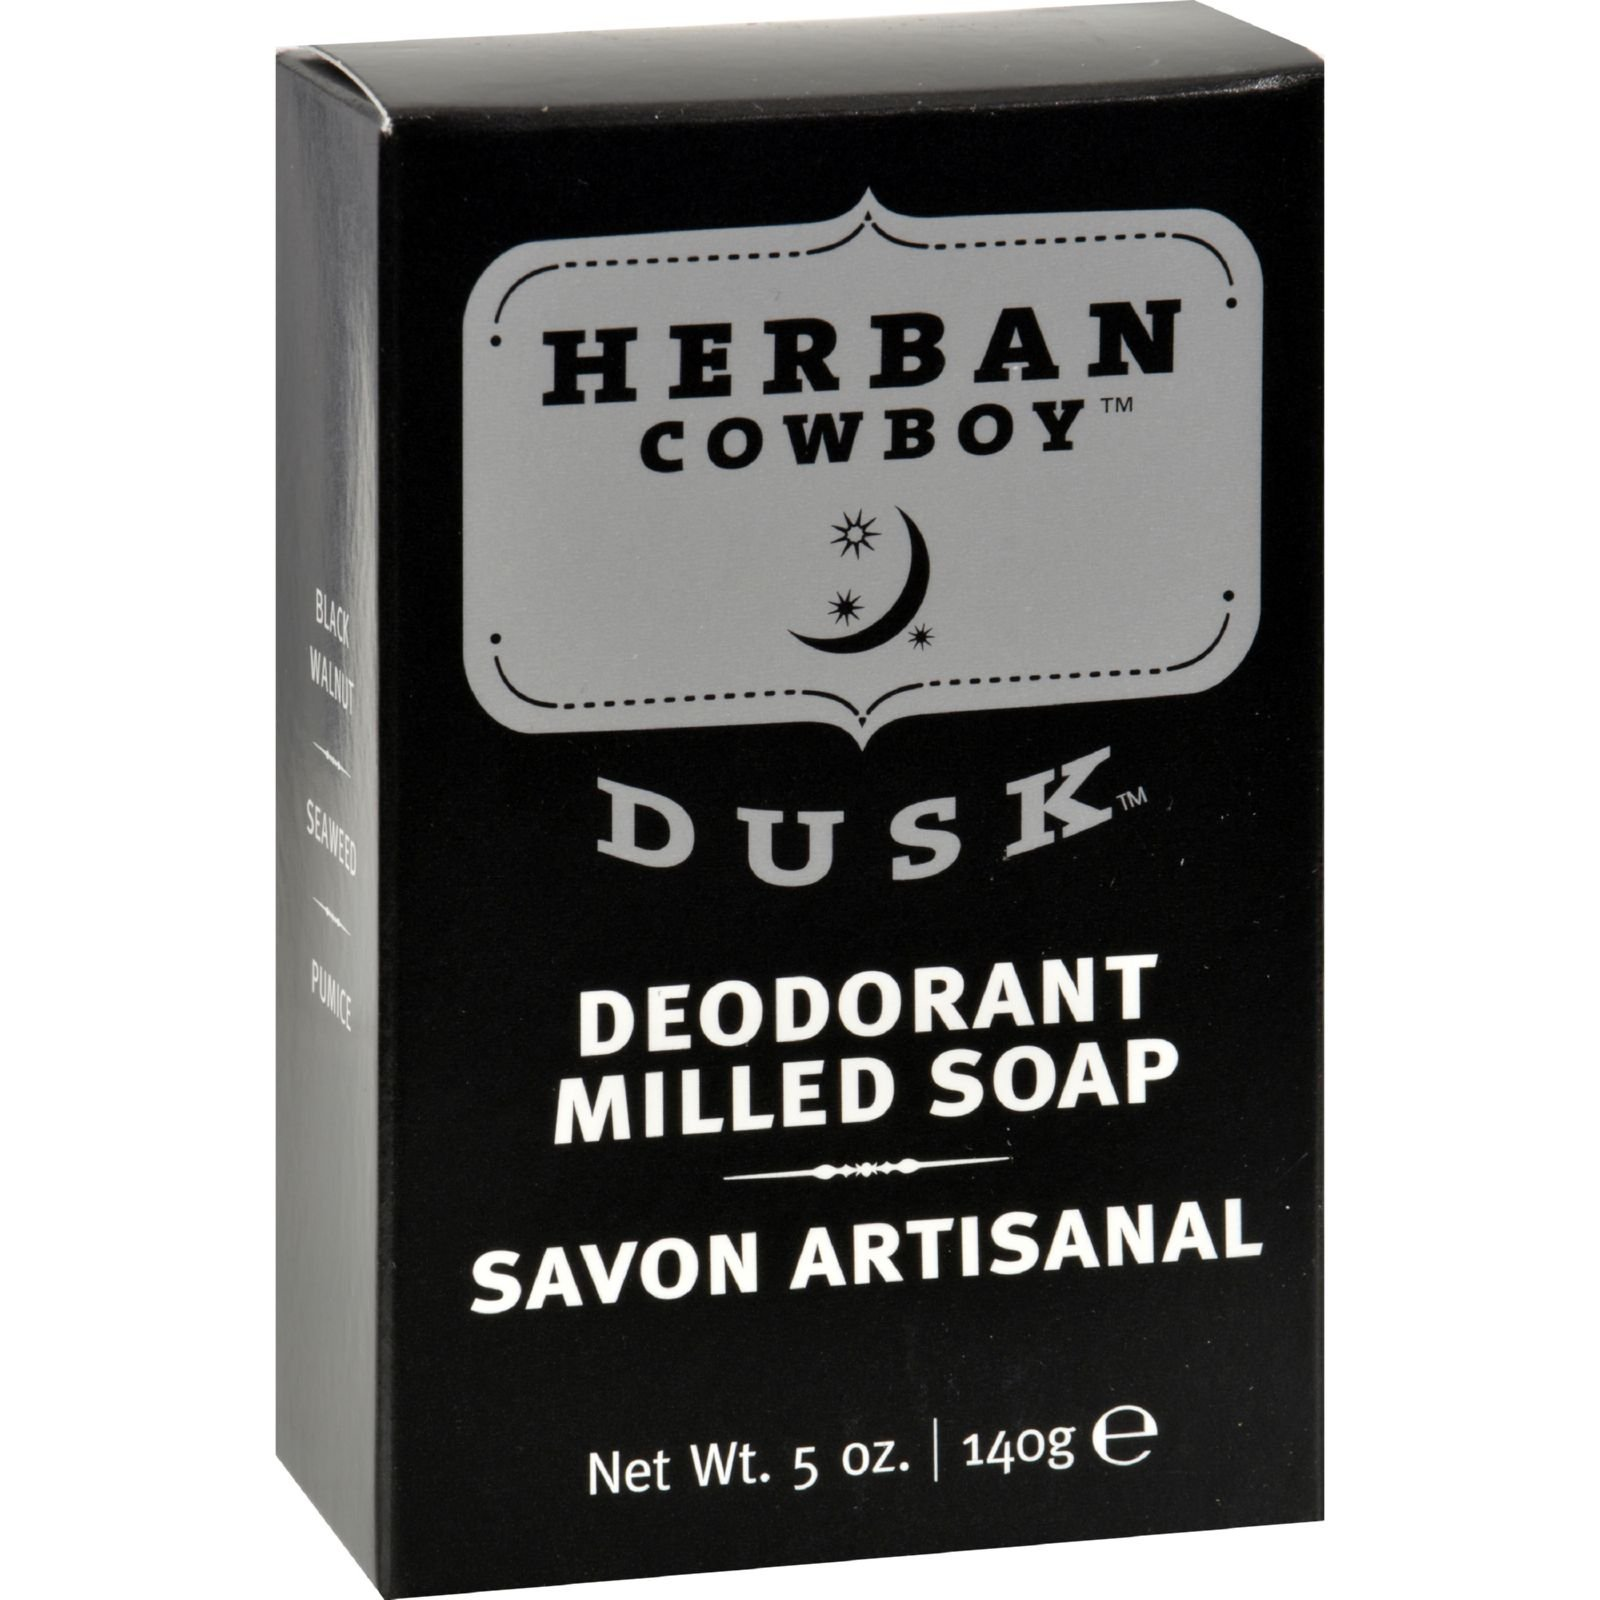 Herban Cowboy Dusk Milled Soap, 5 oz.